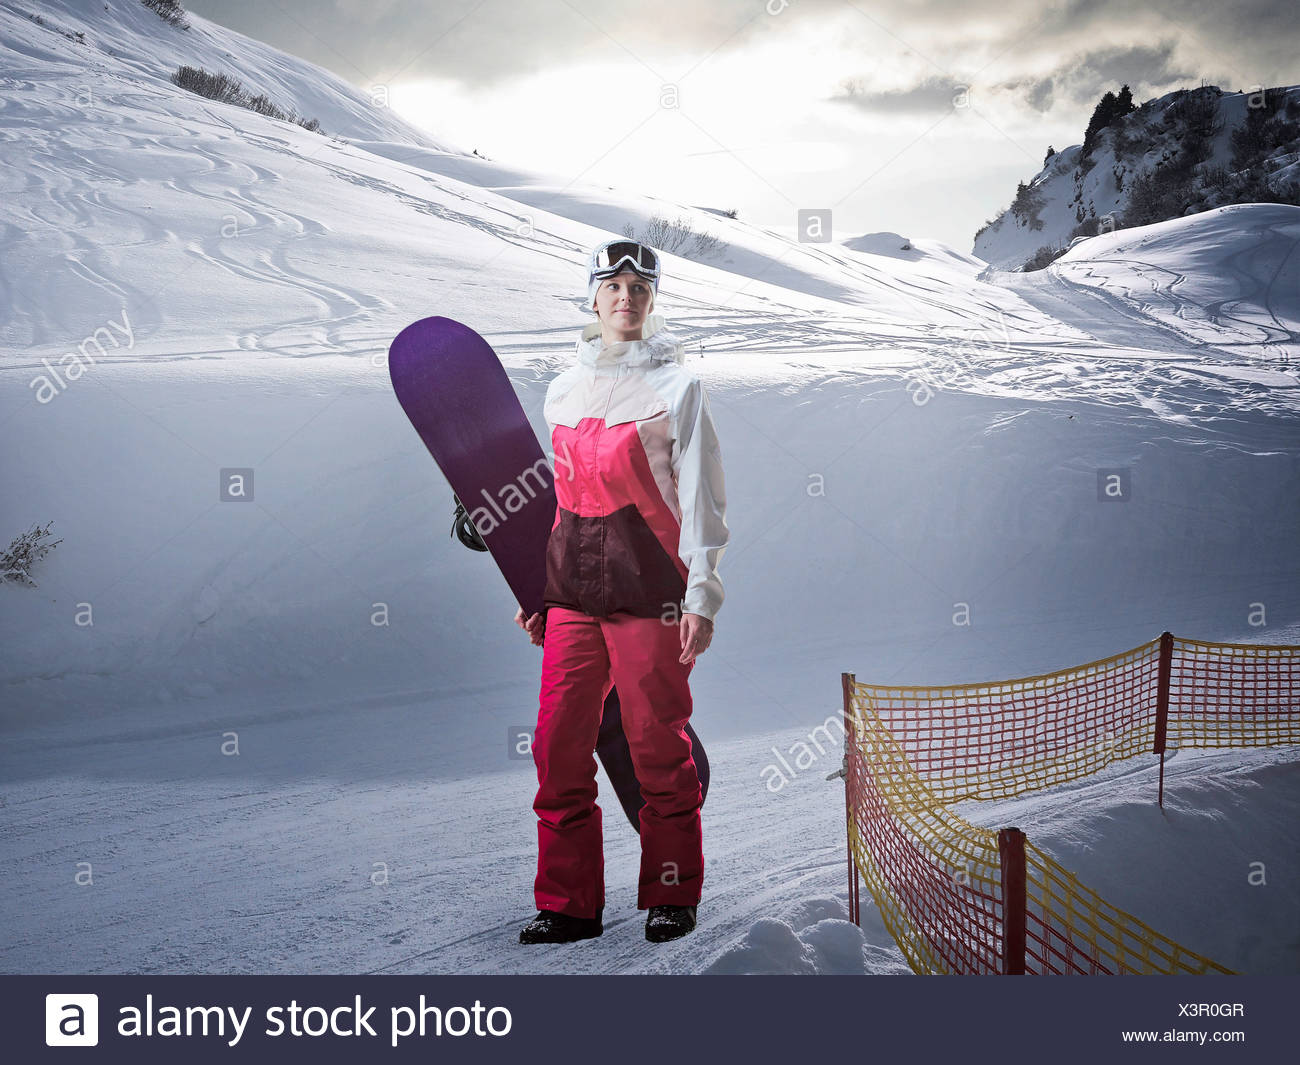 Woman carrying snowboard on snowy slope - Stock Image